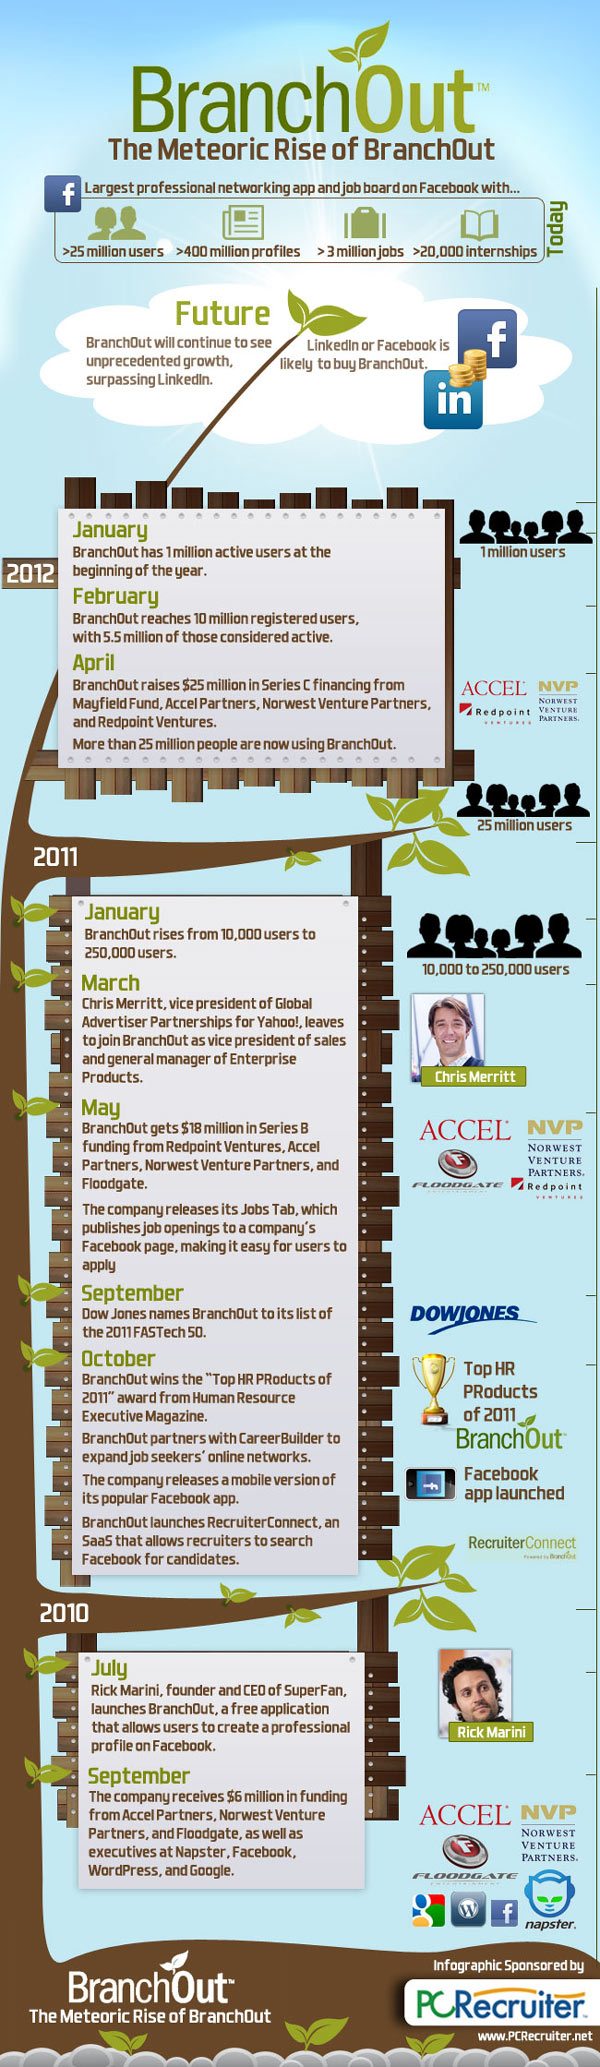 branchout infographic